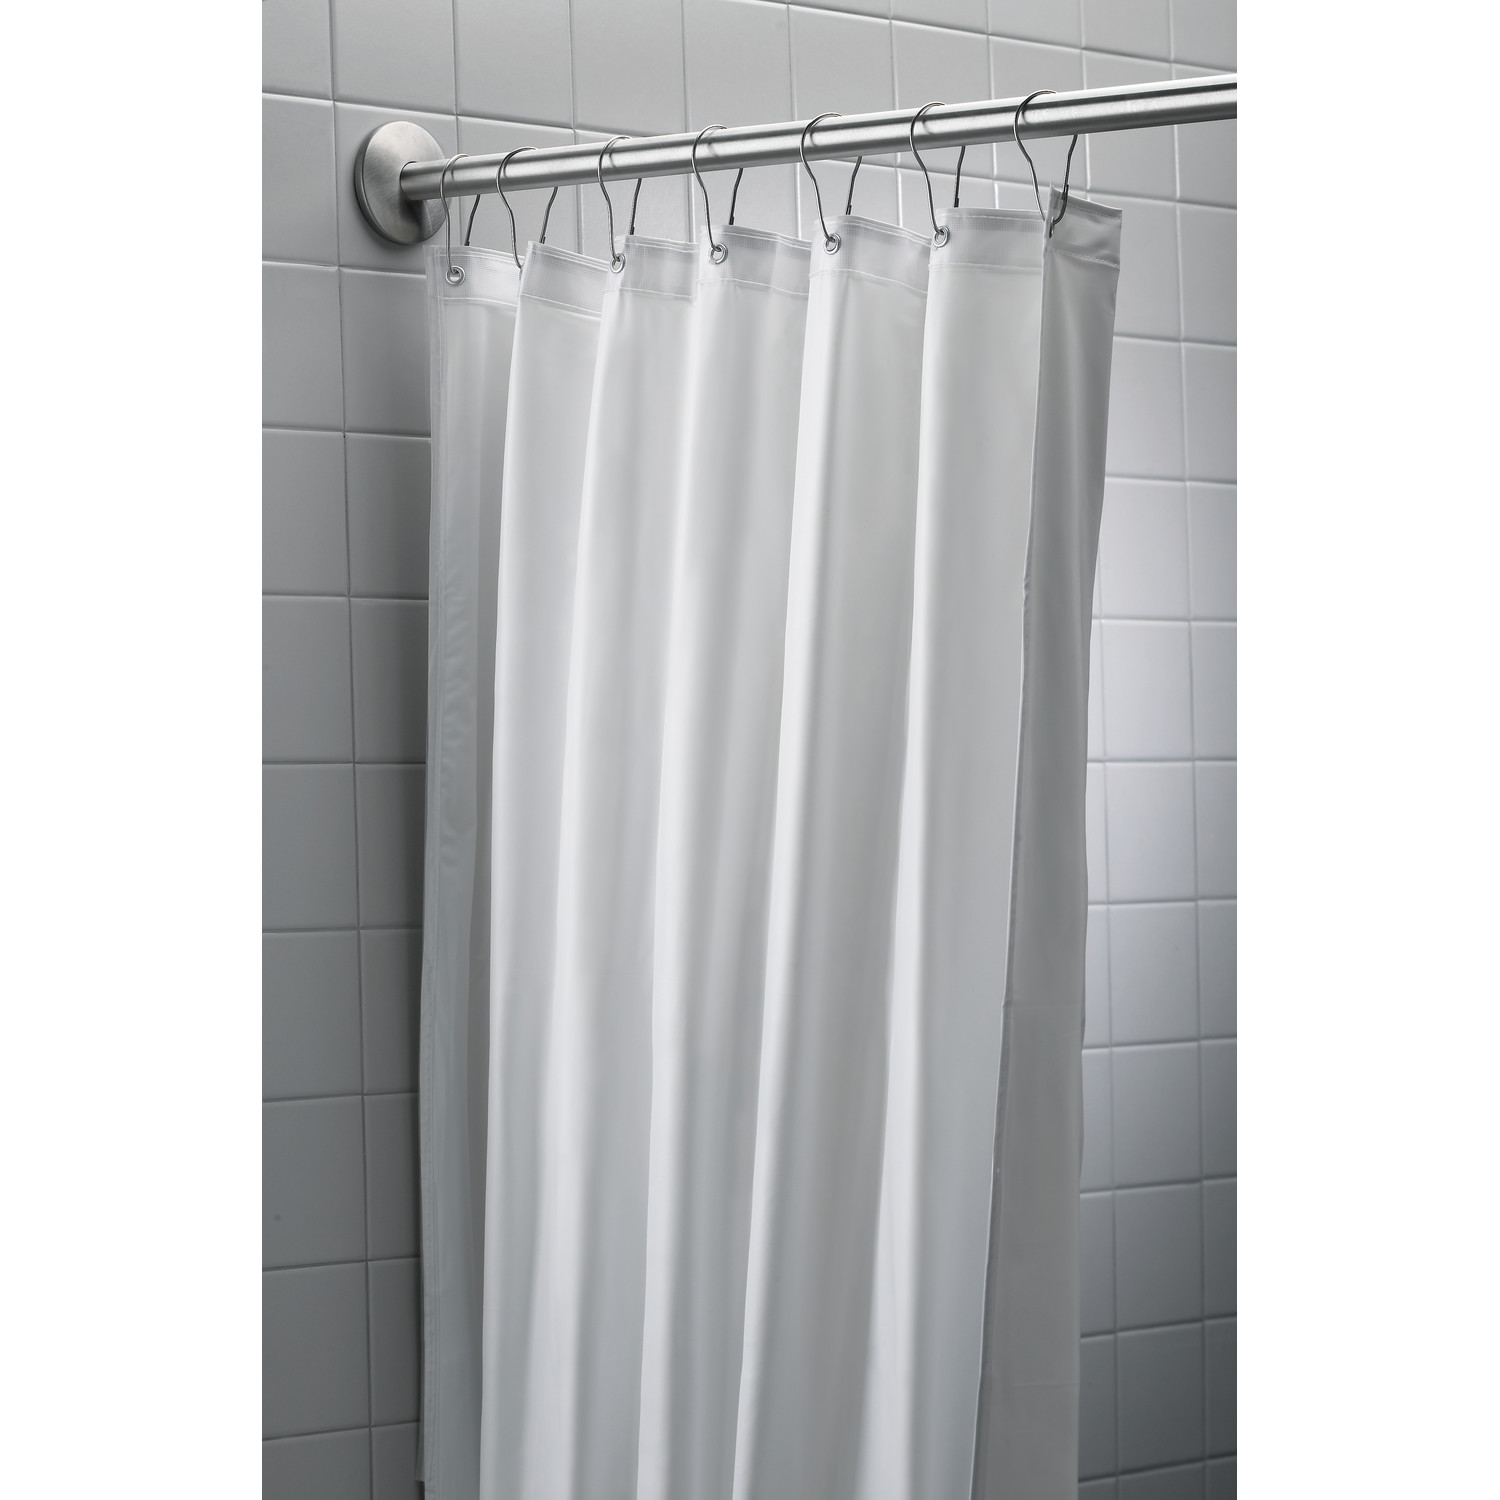 "Bradley 9537-4872 White Antimicrobial Shower Curtain 48"" x 72"""